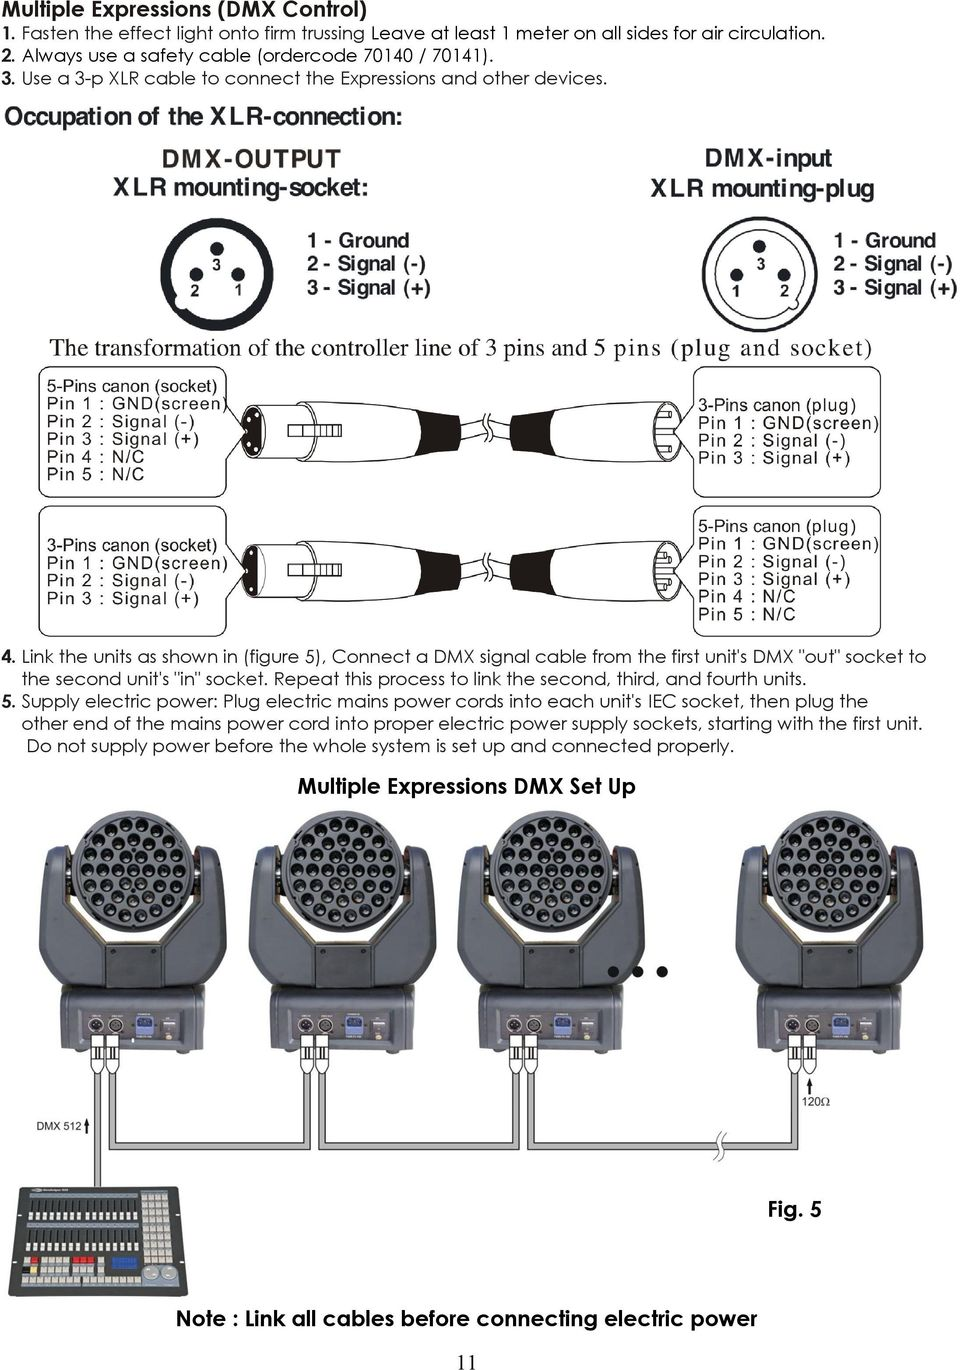 "Link the units as shown in (figure 5), Connect a DMX signal cable from the first unit's DMX ""out"" socket to the second unit's ""in"" socket."